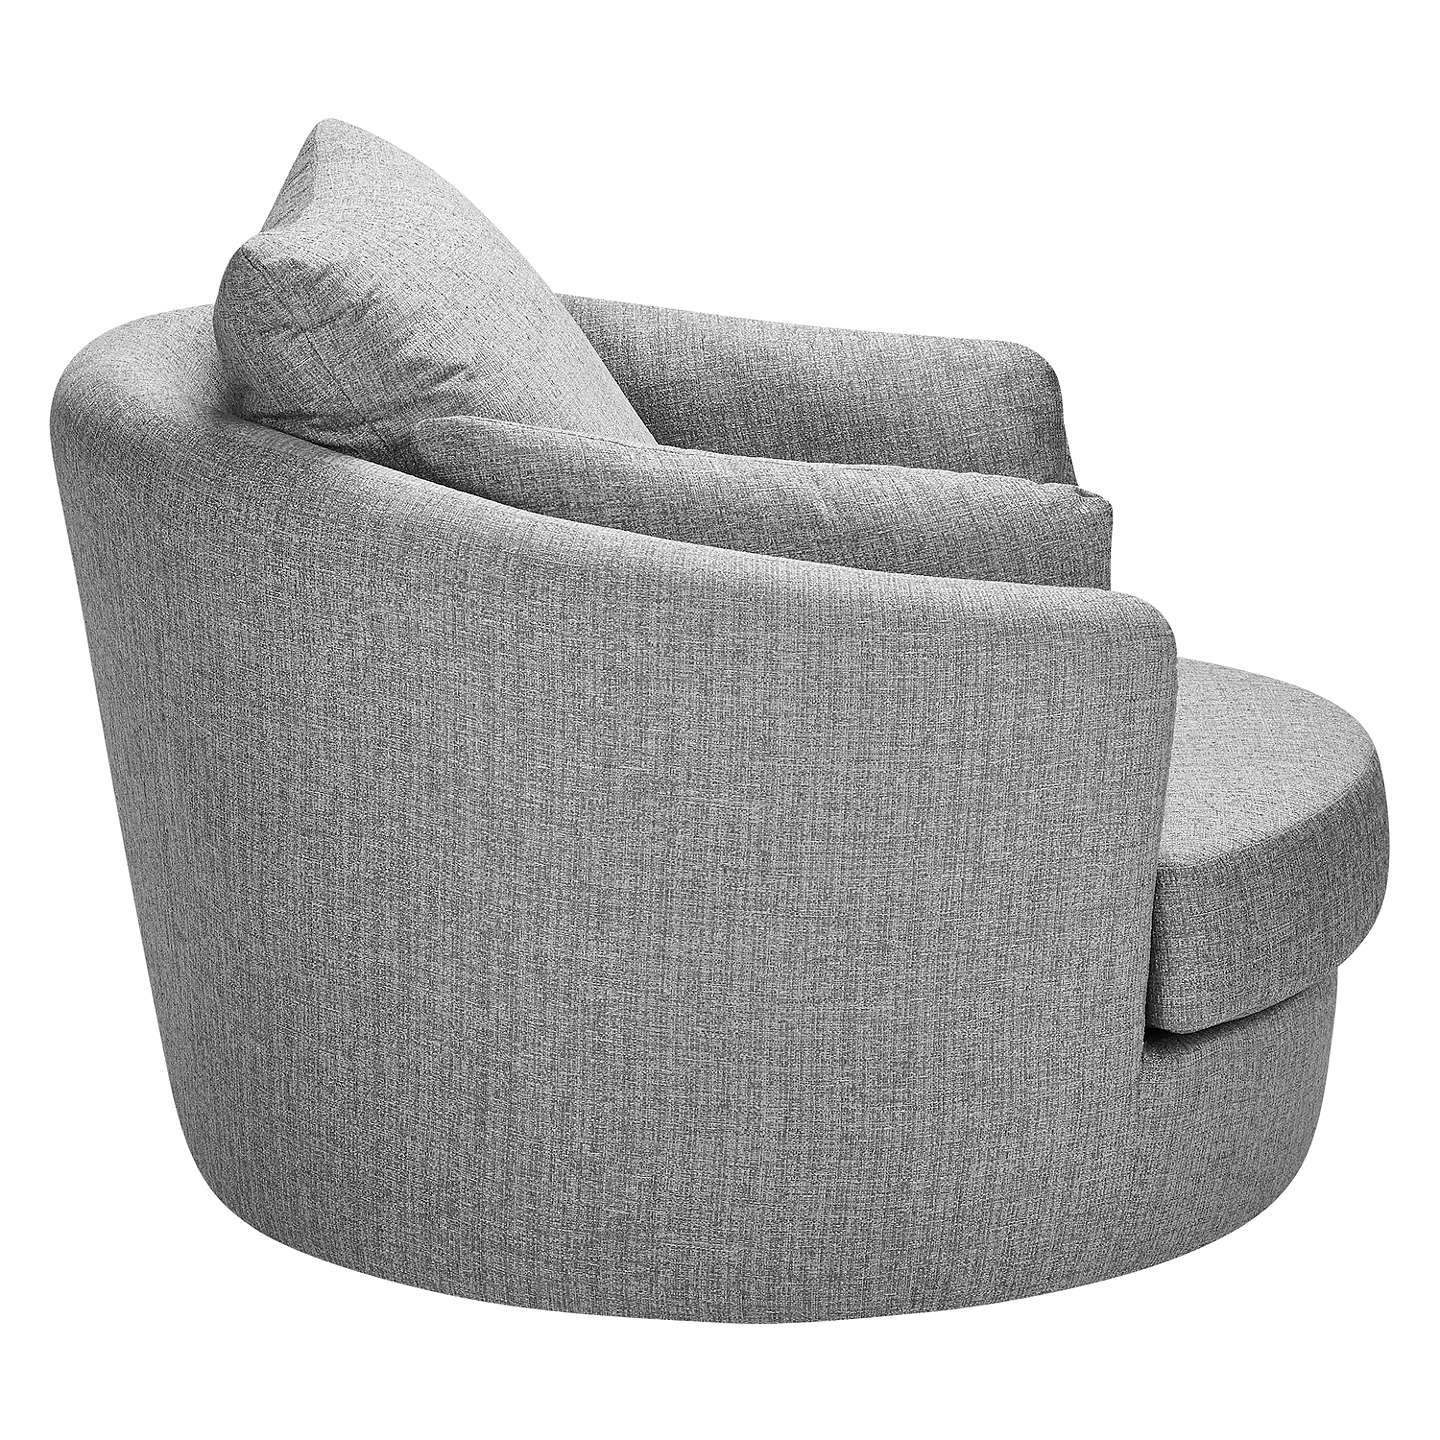 BuyJohn Lewis Antonio Swivel Chair, Riley Storm Online at johnlewis.com